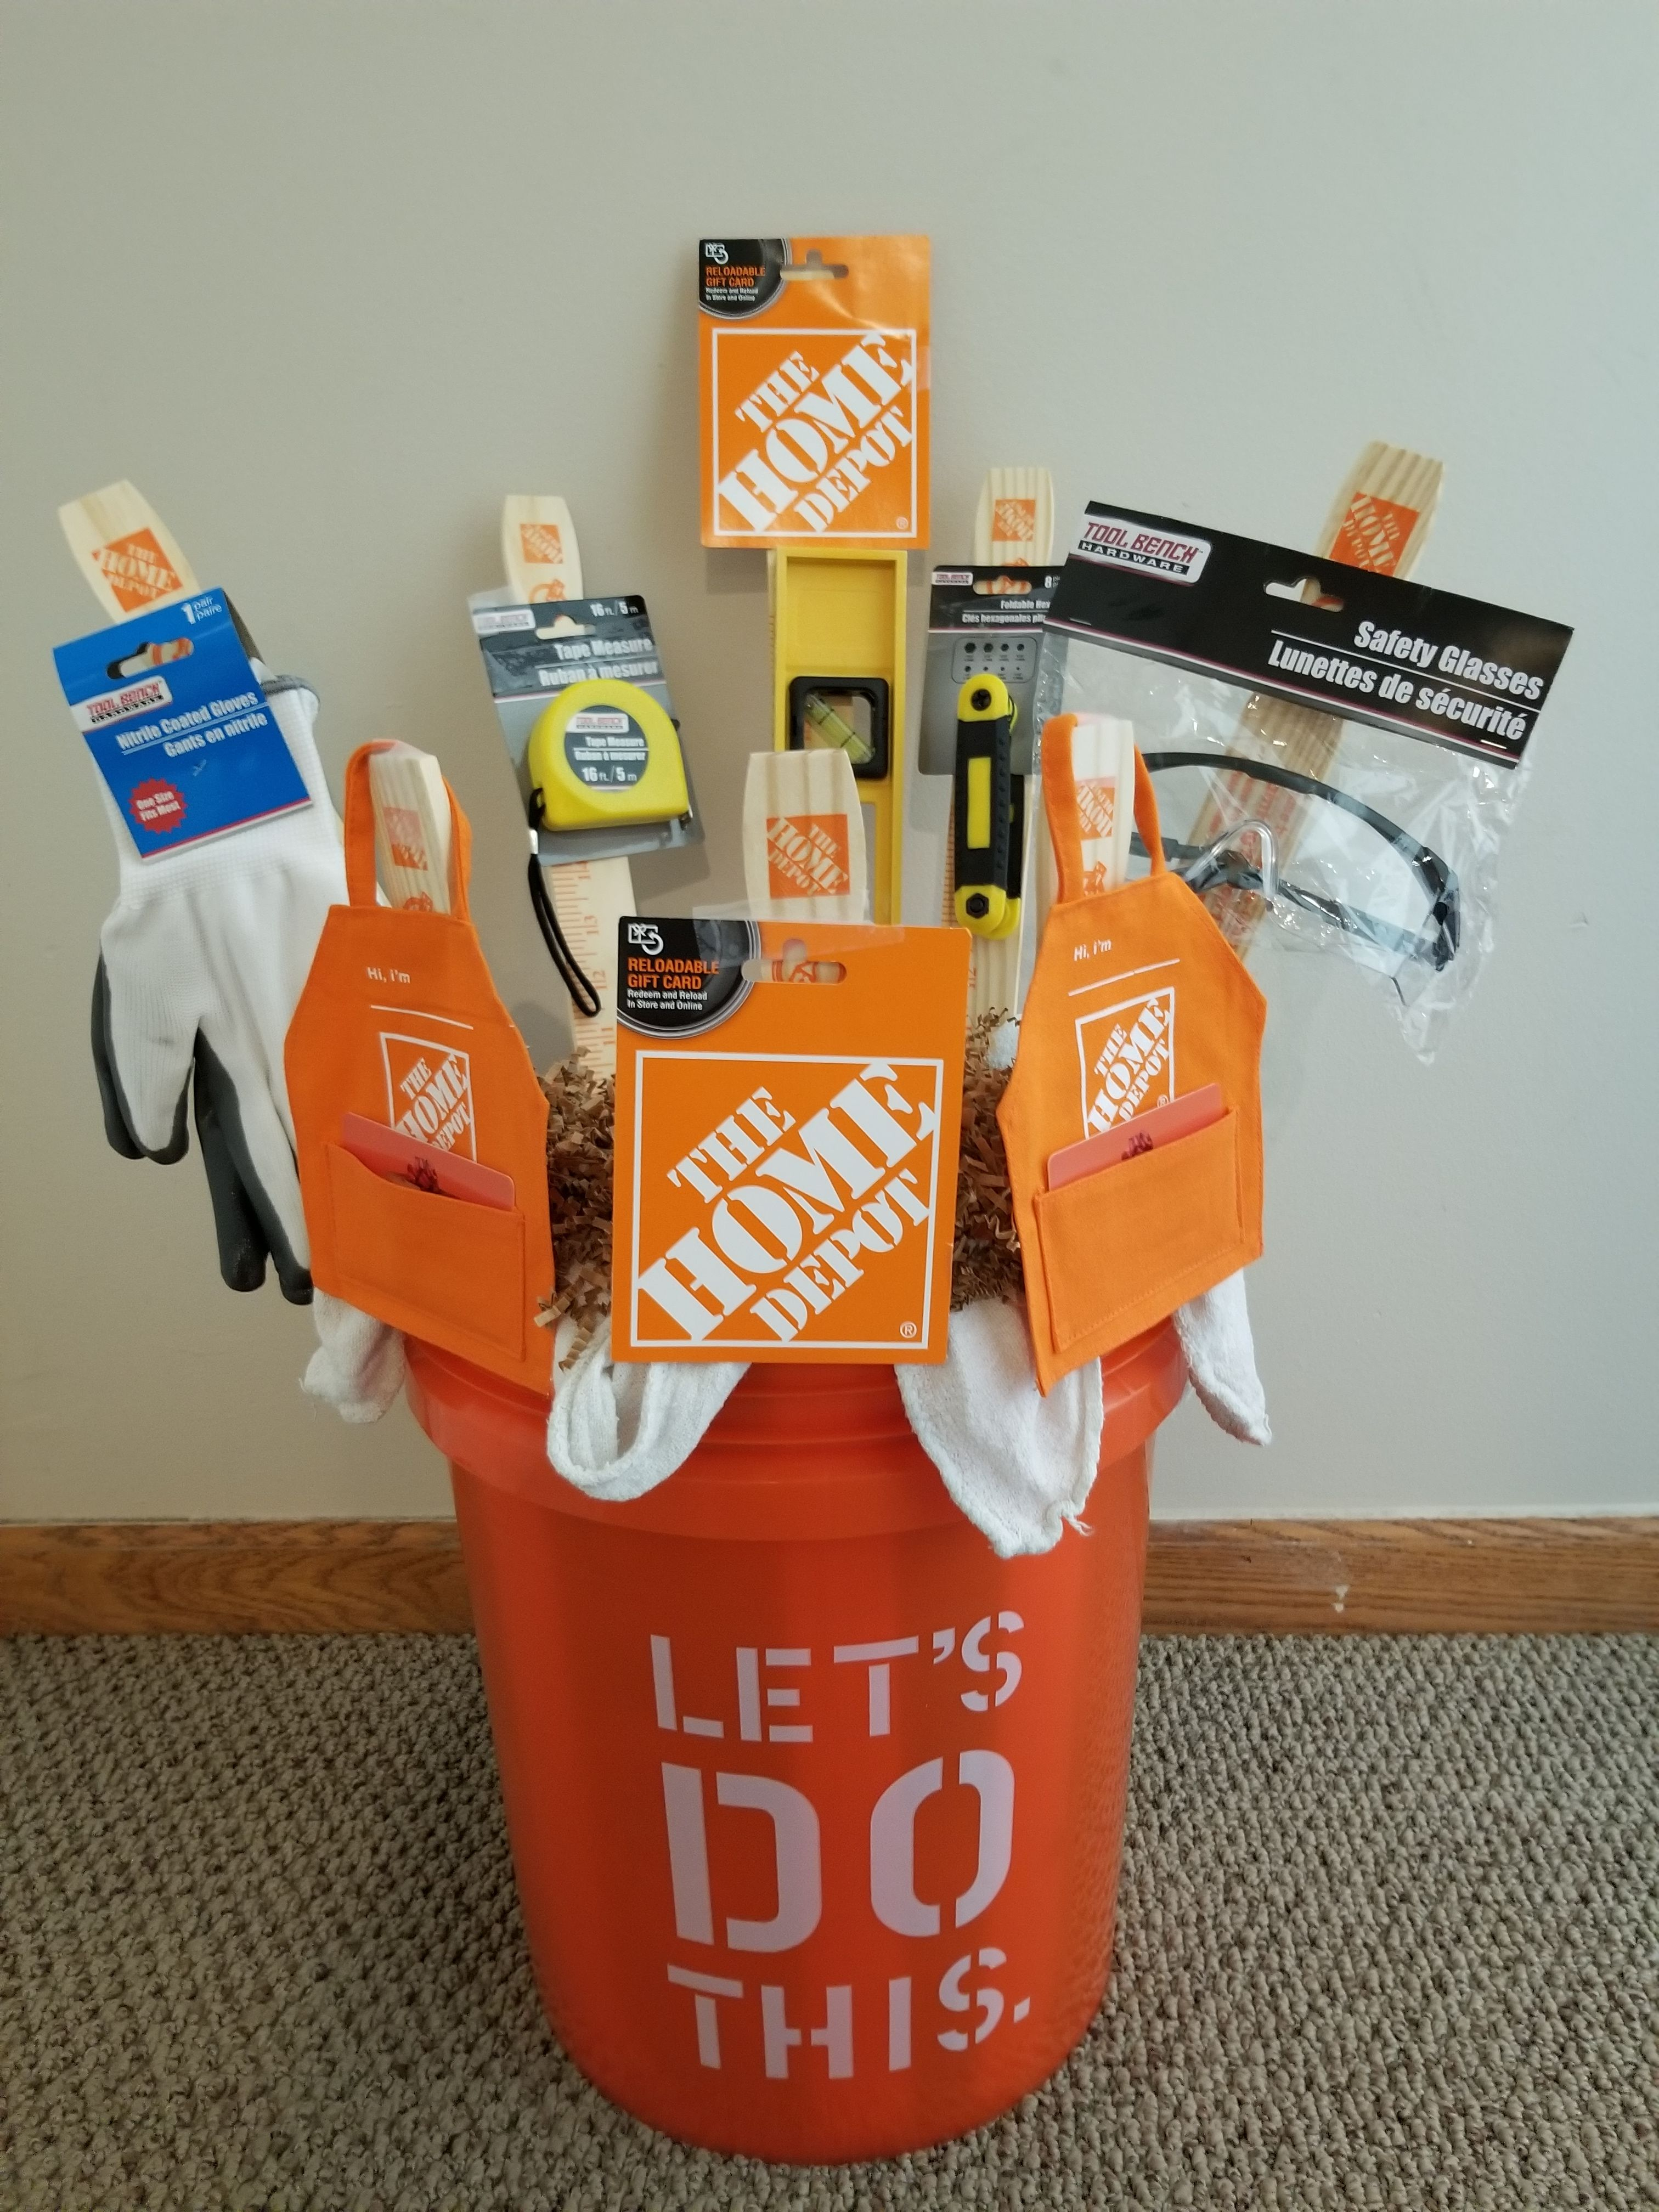 Home Depot Gift Card Idea Gift Card Presentation Clever Gift Small Gifts